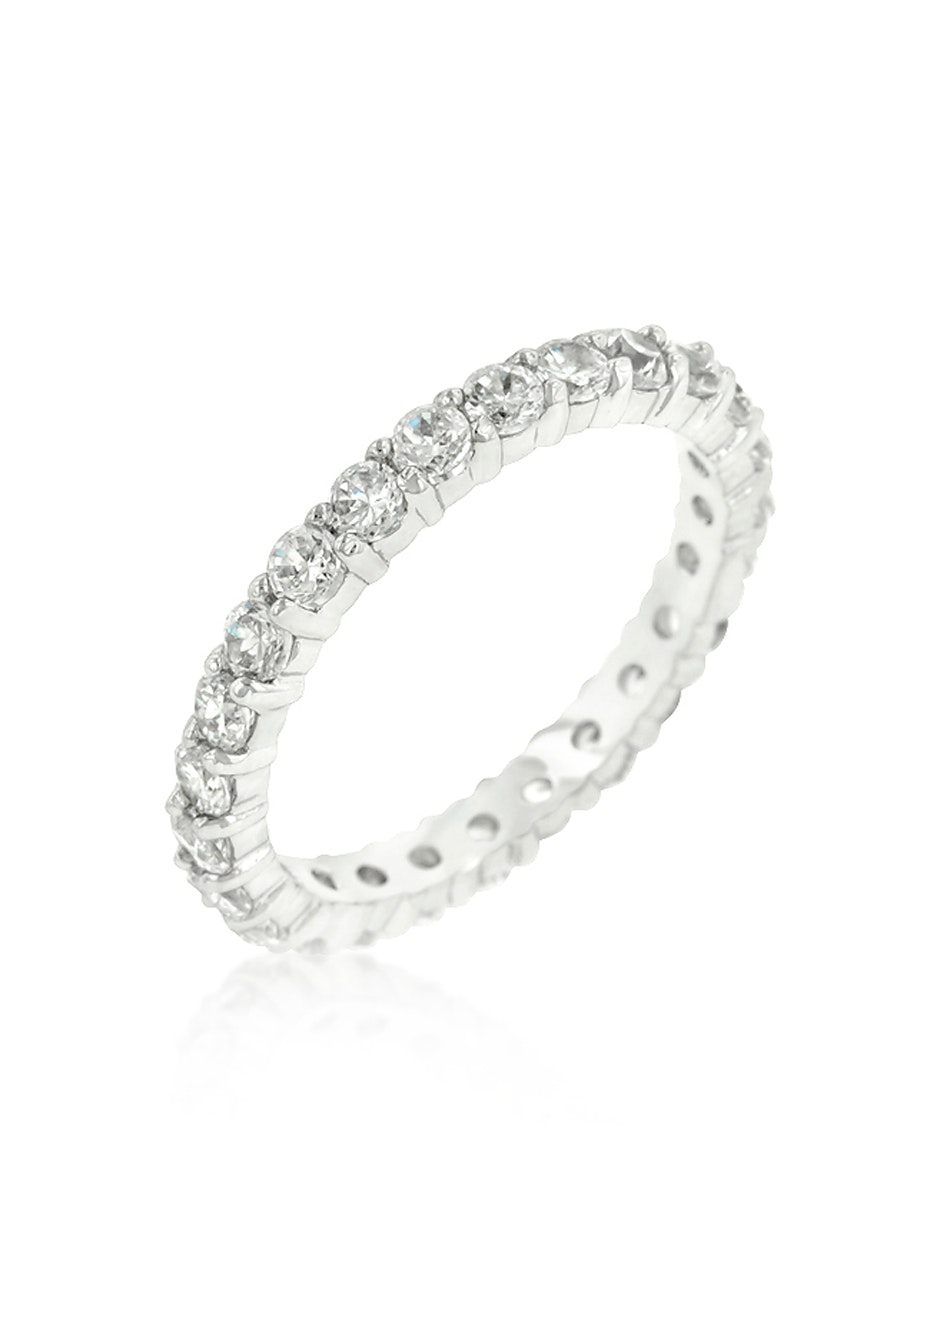 Enternity Ring in White Gold